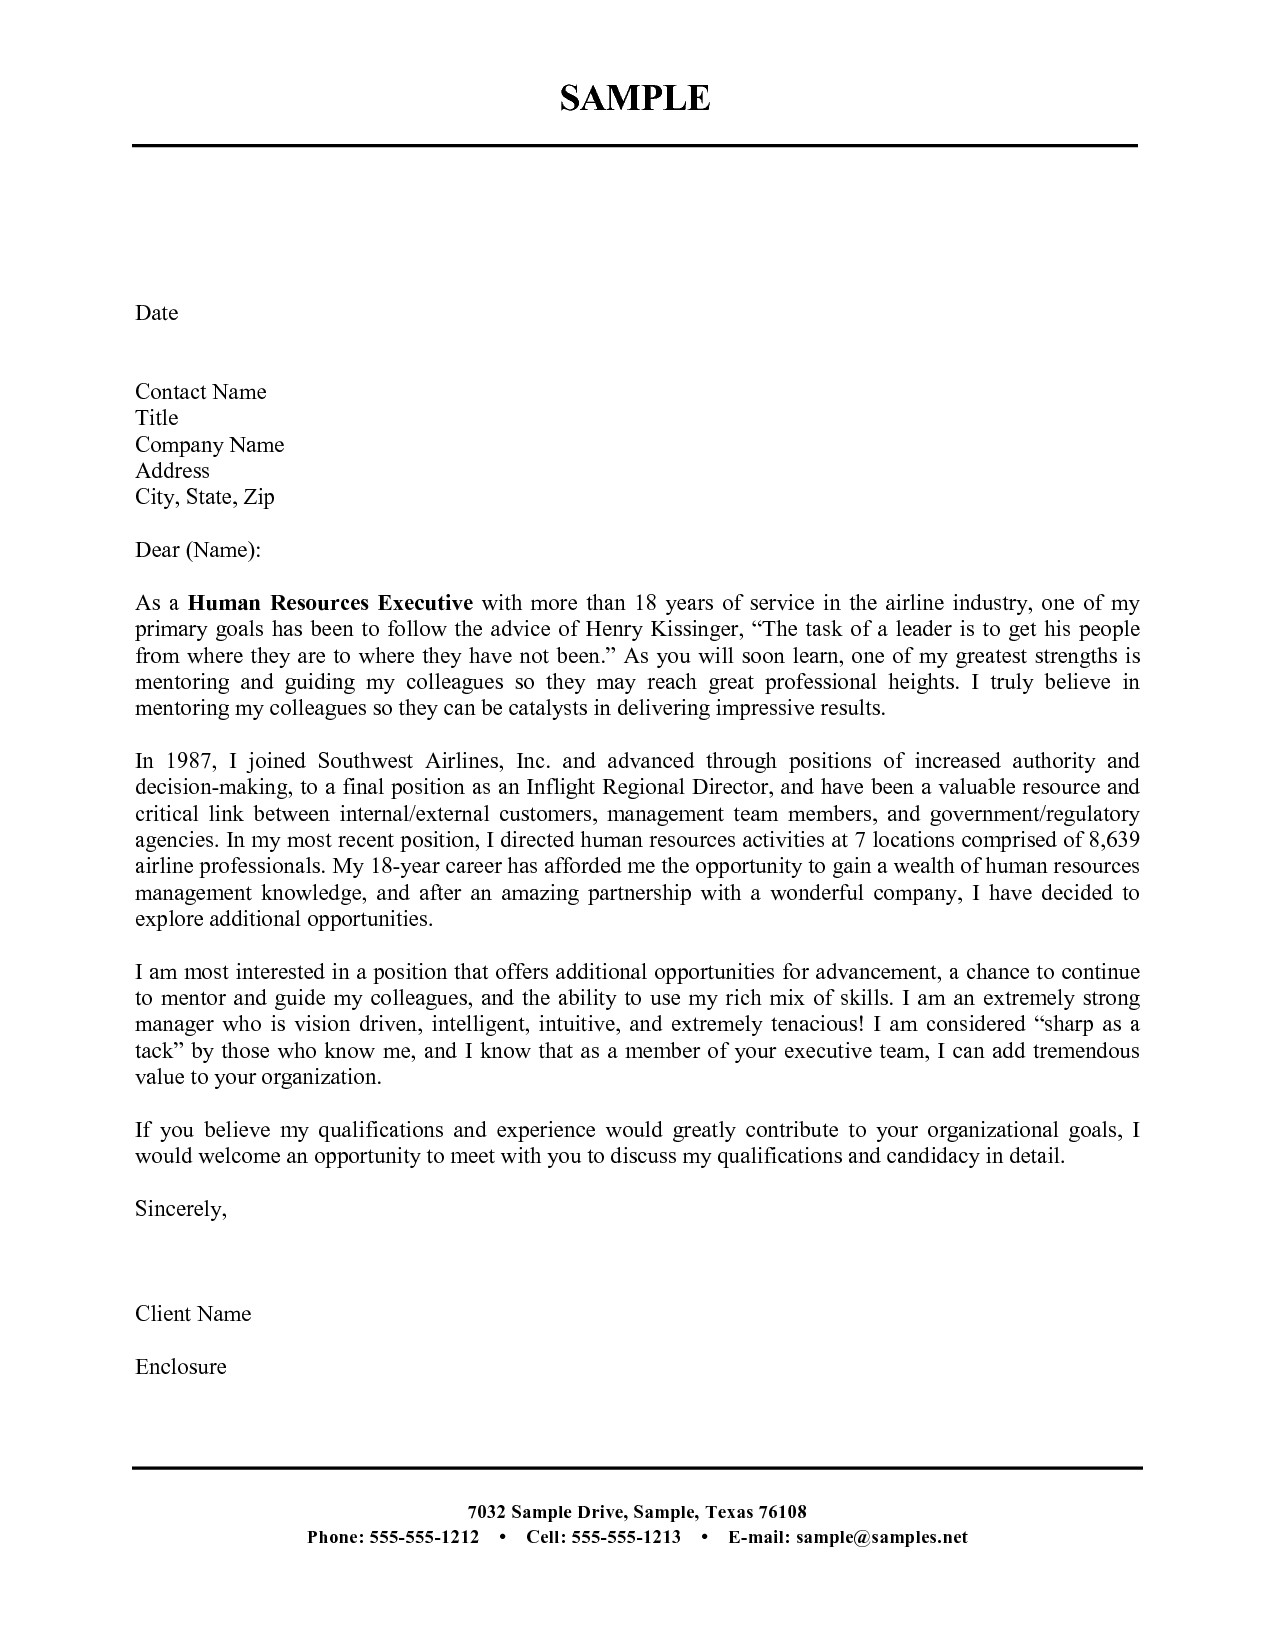 Microsoft Word Cover Letter Template Cover Letter Template Word Document Microsoft Word Cover